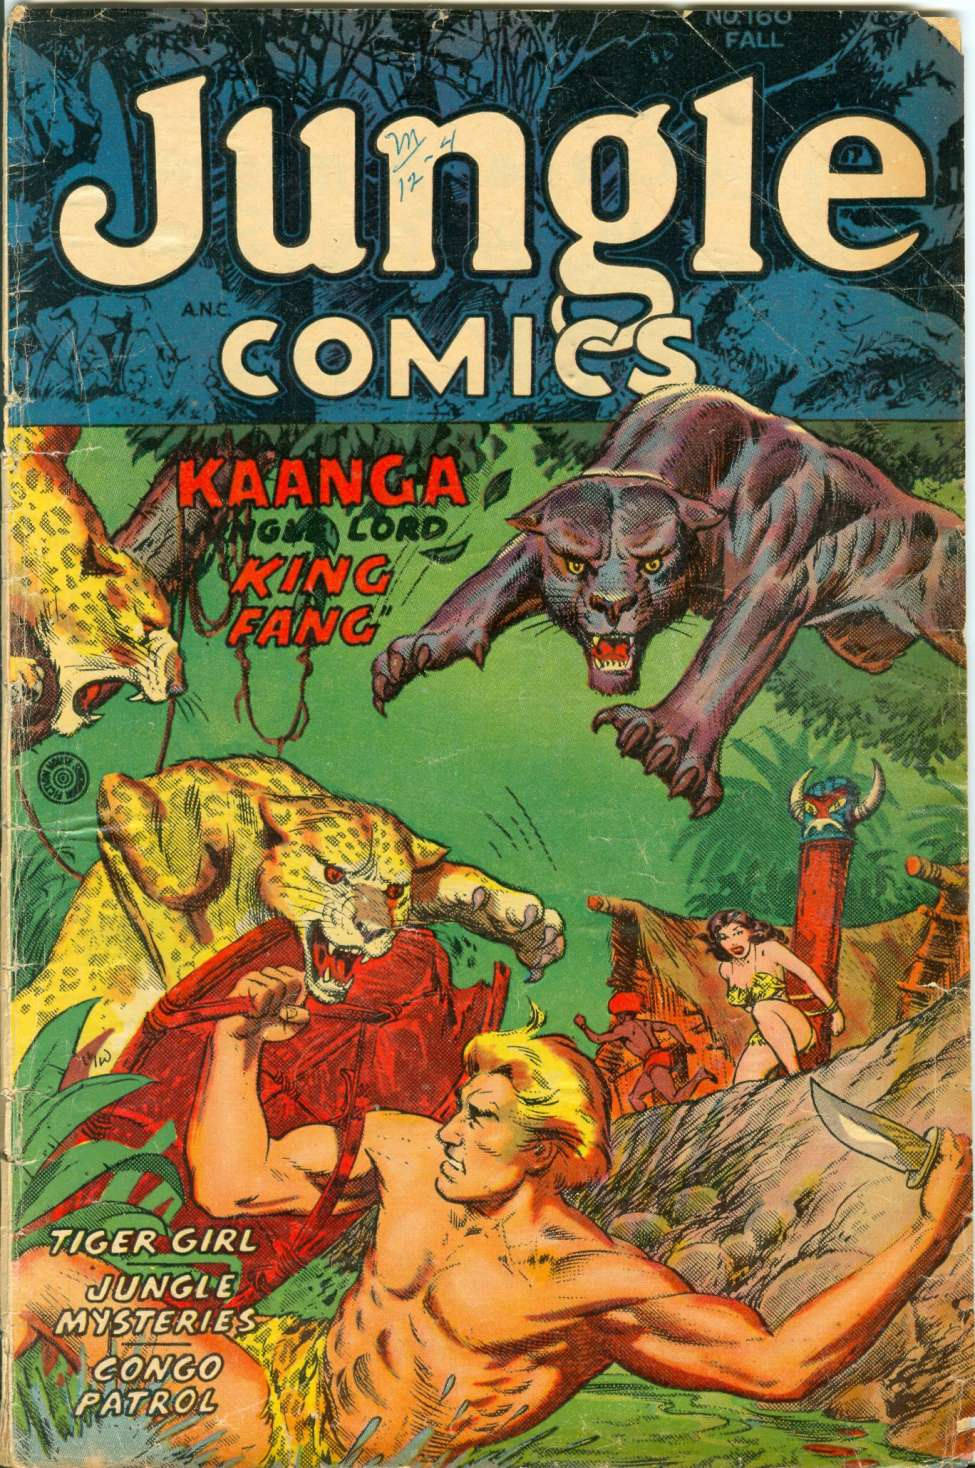 Comic Book Cover For Jungle Comics #160